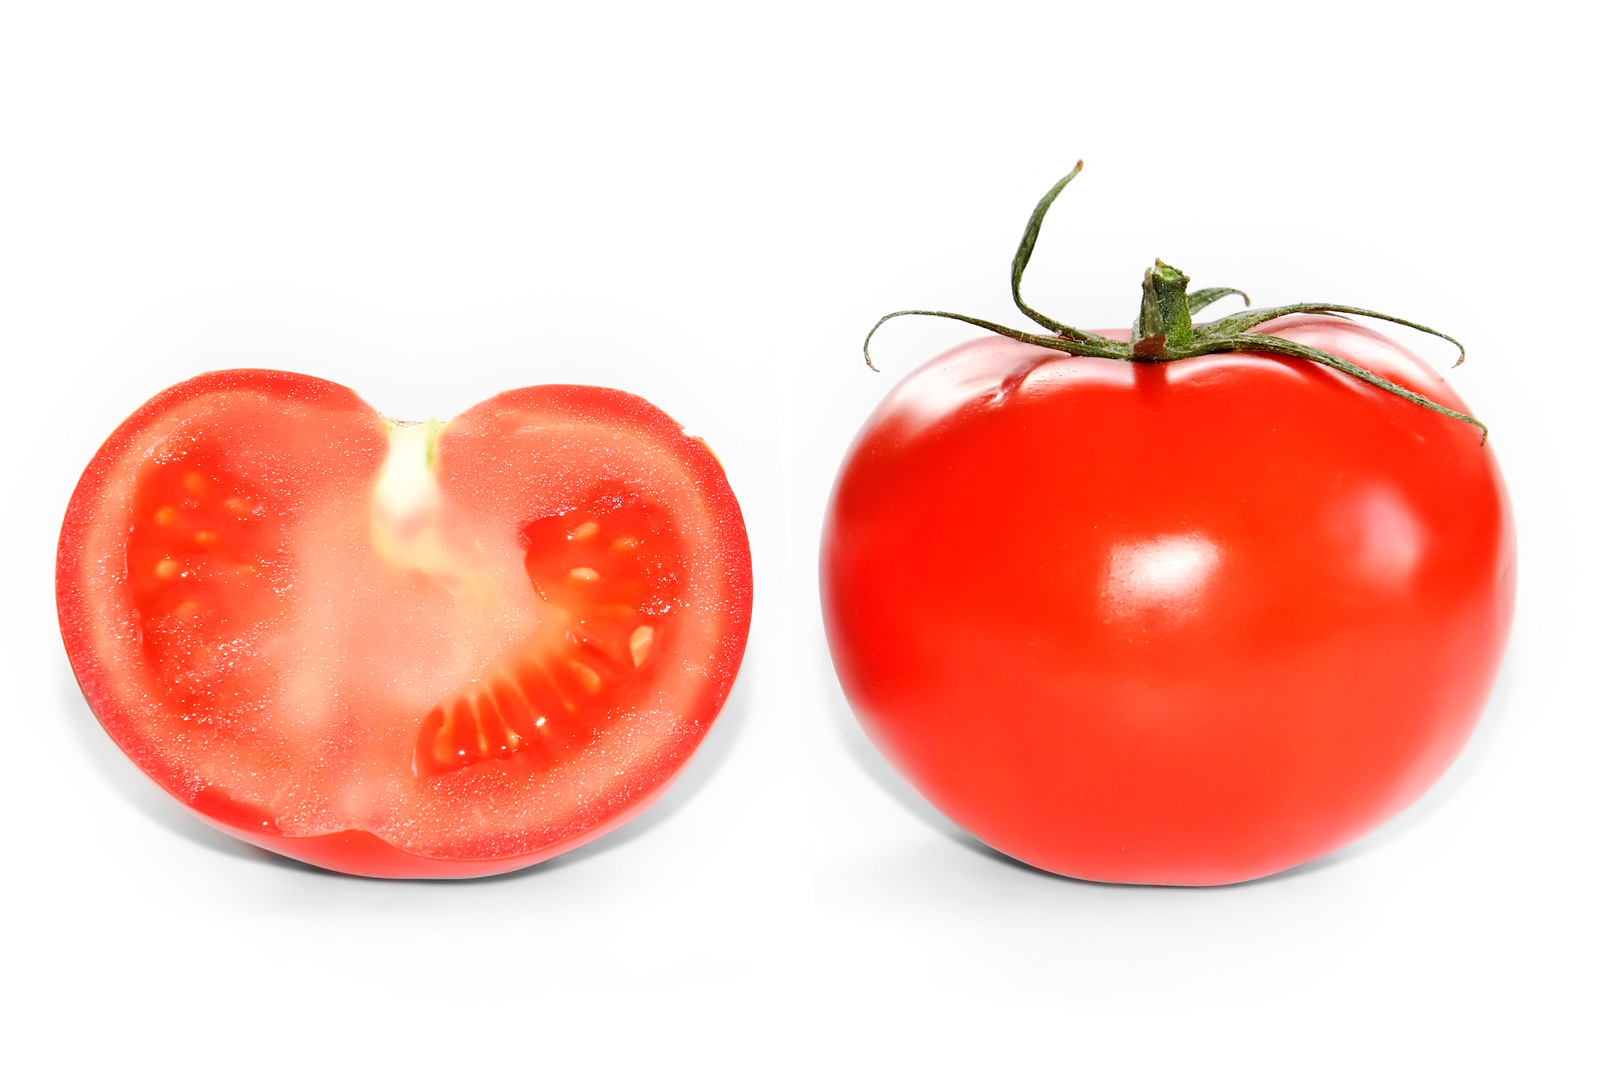 Tomato Red is a Irish-Canadian crime film written and directed by Juanita Wilson and starring Julia trismaschacon.tk is based on the novel of the same name by Daniel Woodrell.